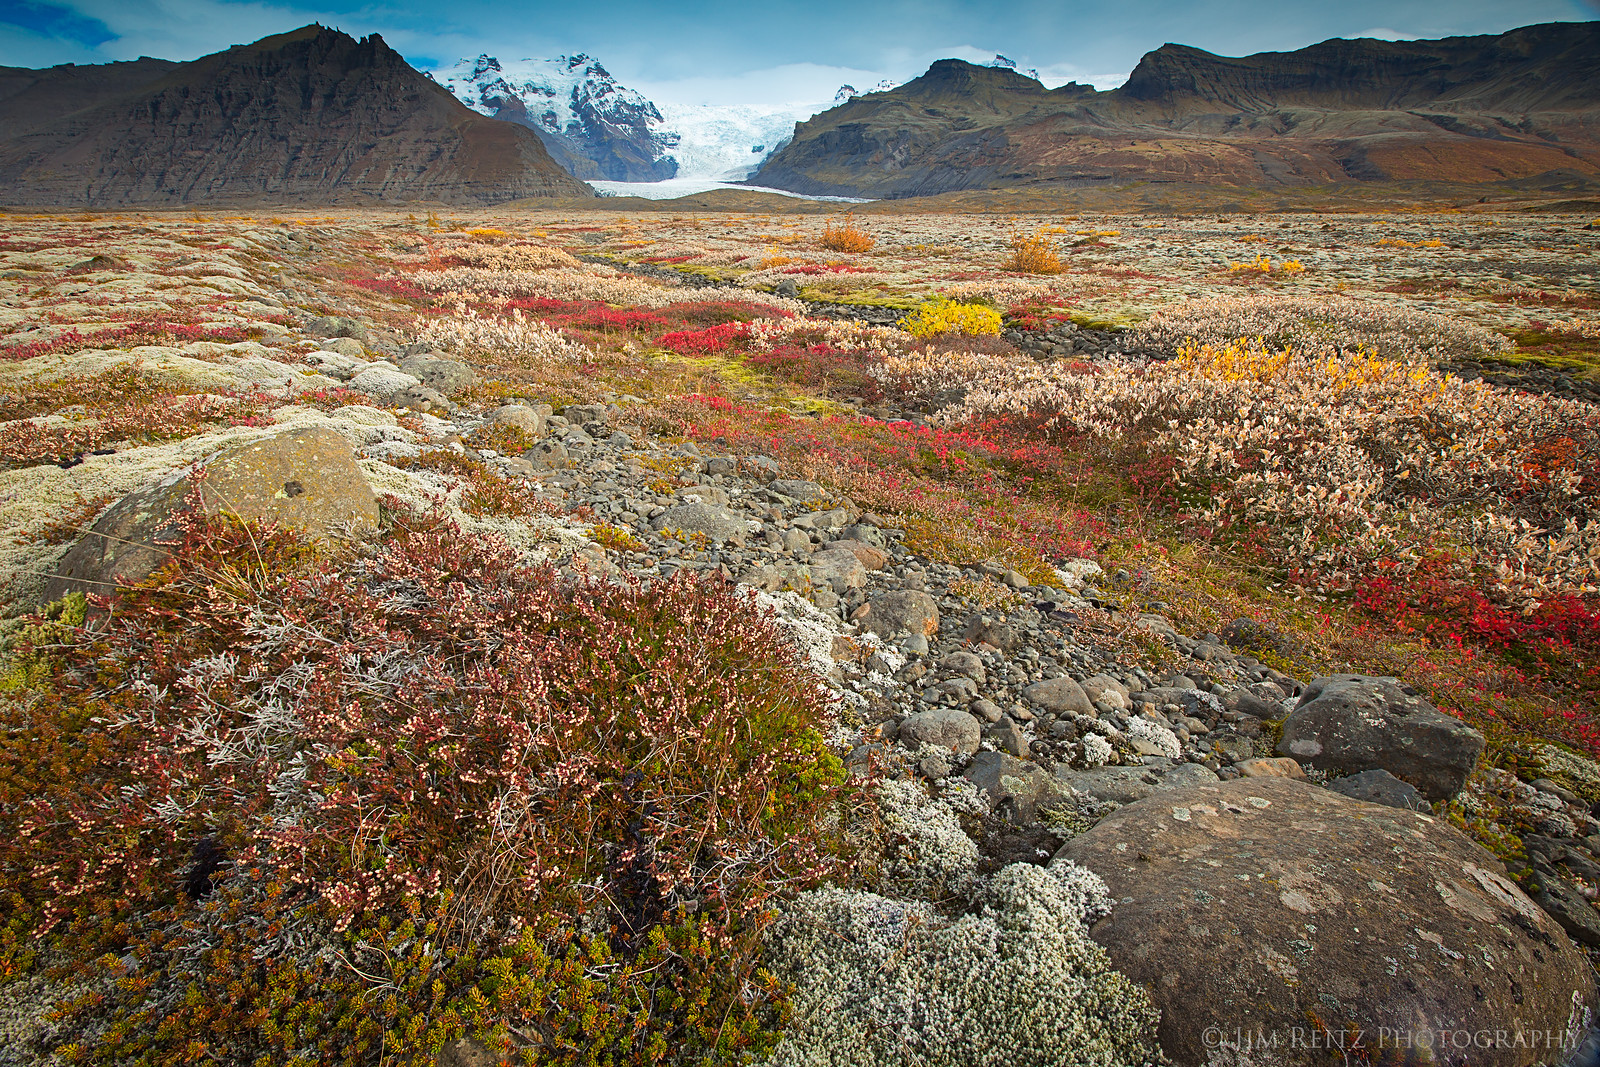 Autumn colors on the mossy plains in Skaftafell National Park, southern Iceland.